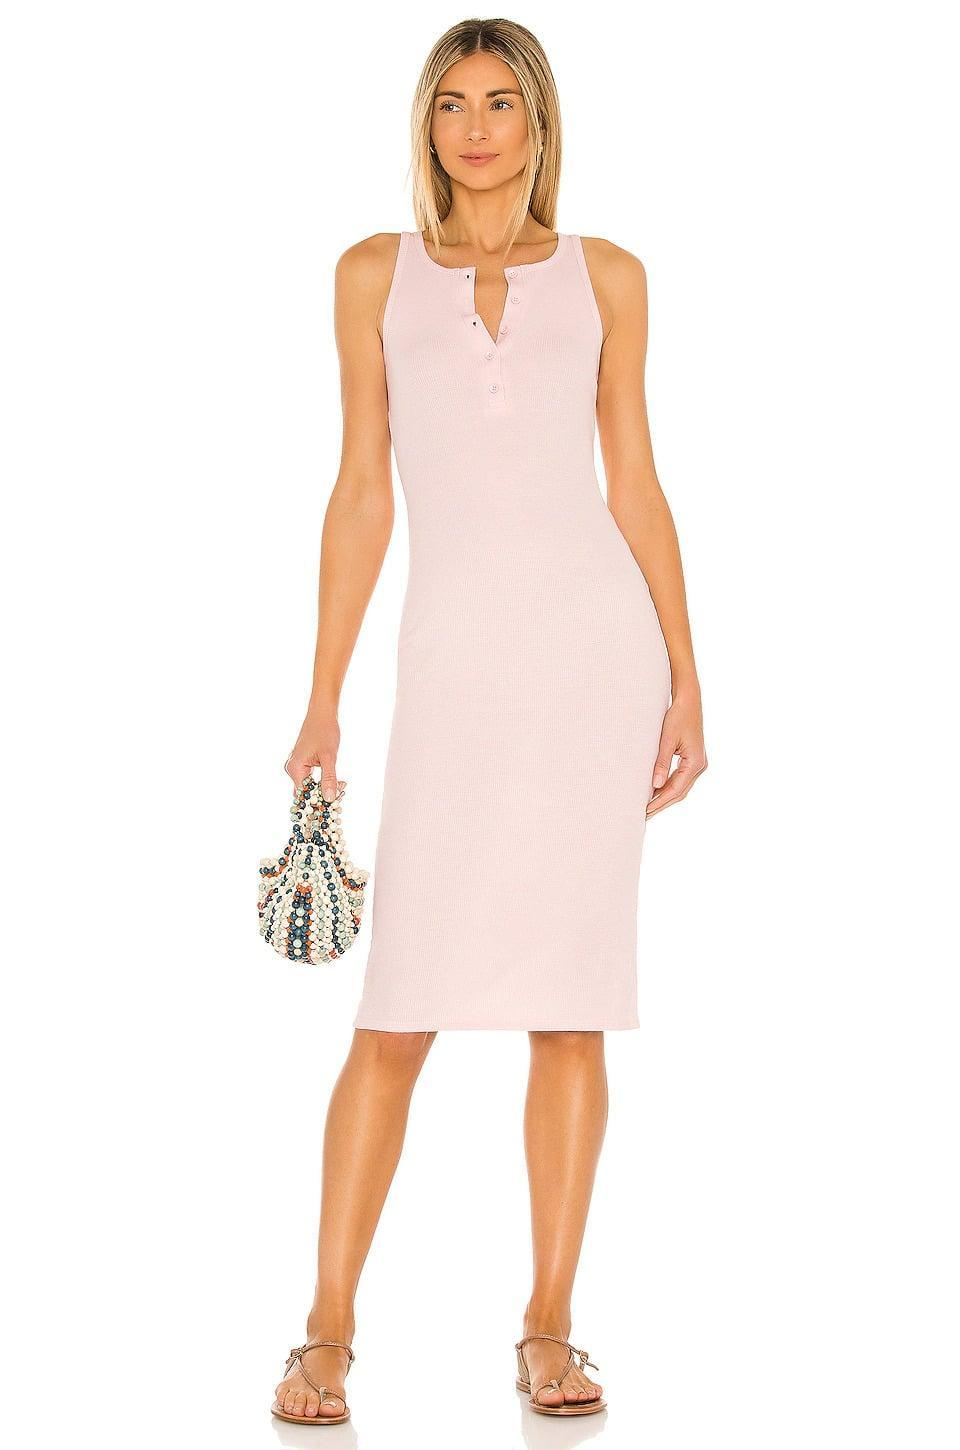 <p>The <span>Lovers + Friends Celeste Midi Dress in Blush Pink</span> ($65, originally $158) is such a cute brunch dress. It's casual, comfy, and super flattering. </p>